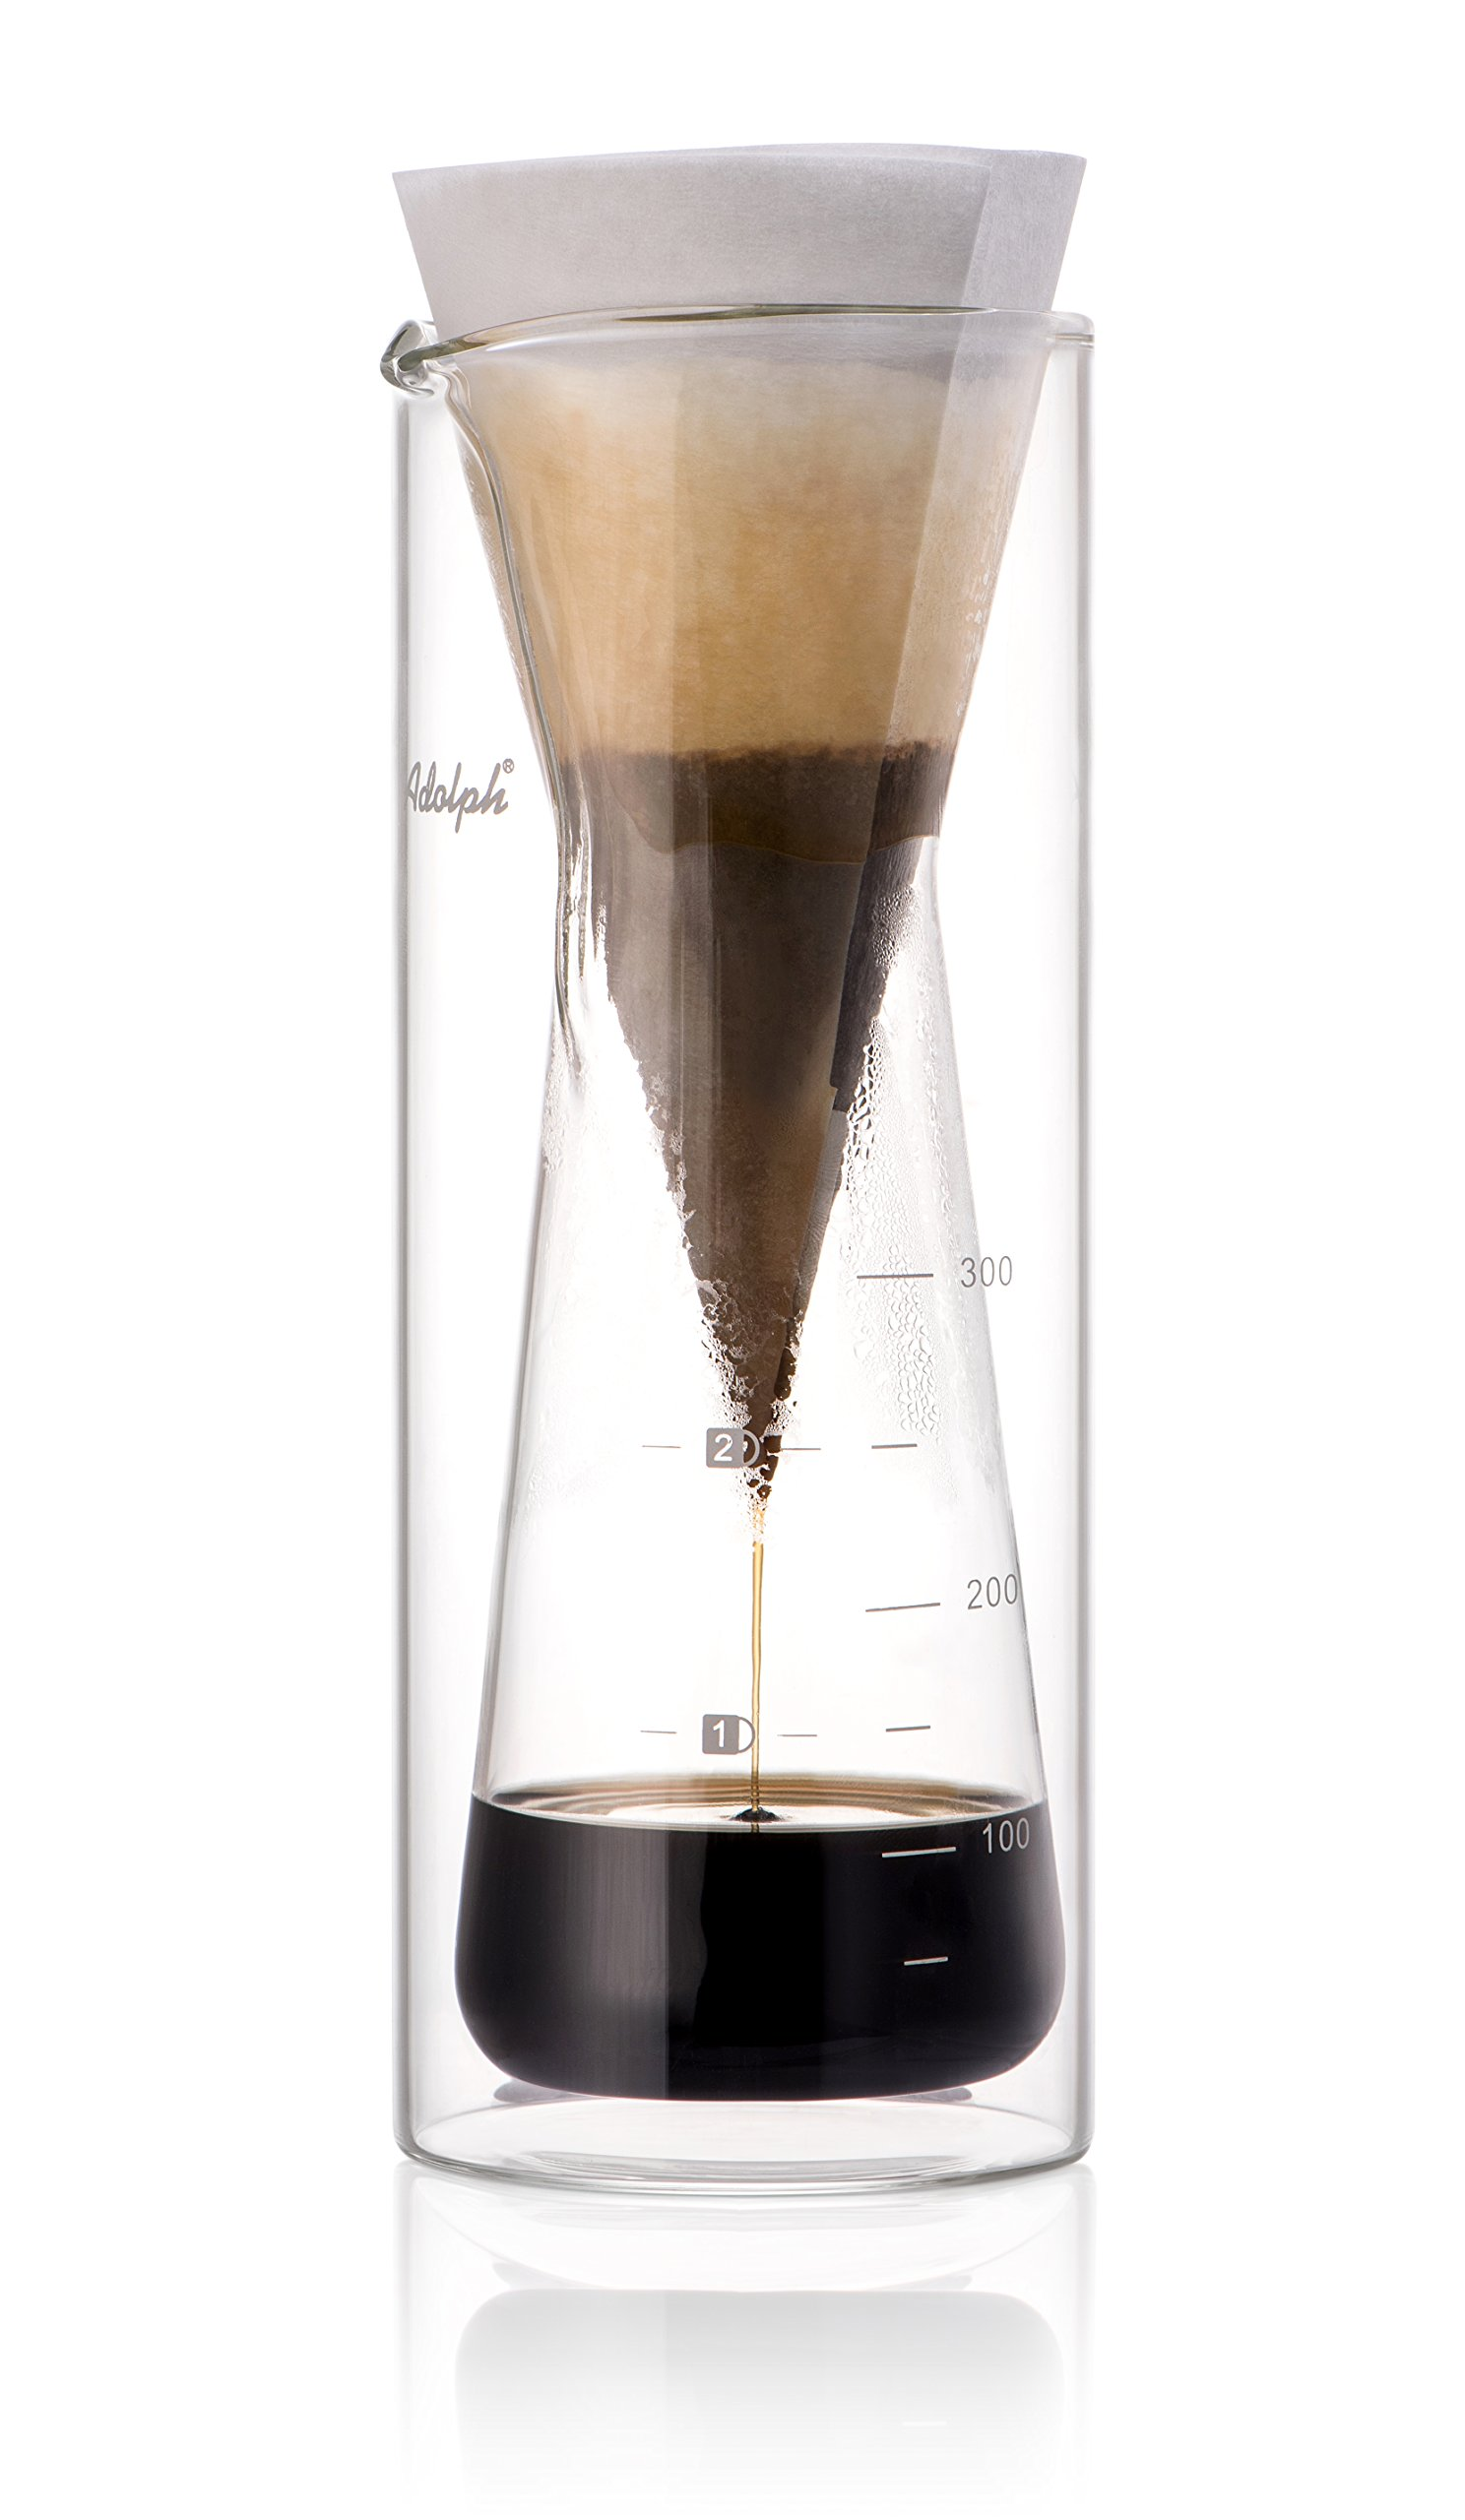 Adolph Double-Wall Glass Heat Insulation Drip Coffeemaker Pour Over Coffee Maker - Great Coffee Made Simple - 3 Cup Hand Drip Coffee Maker